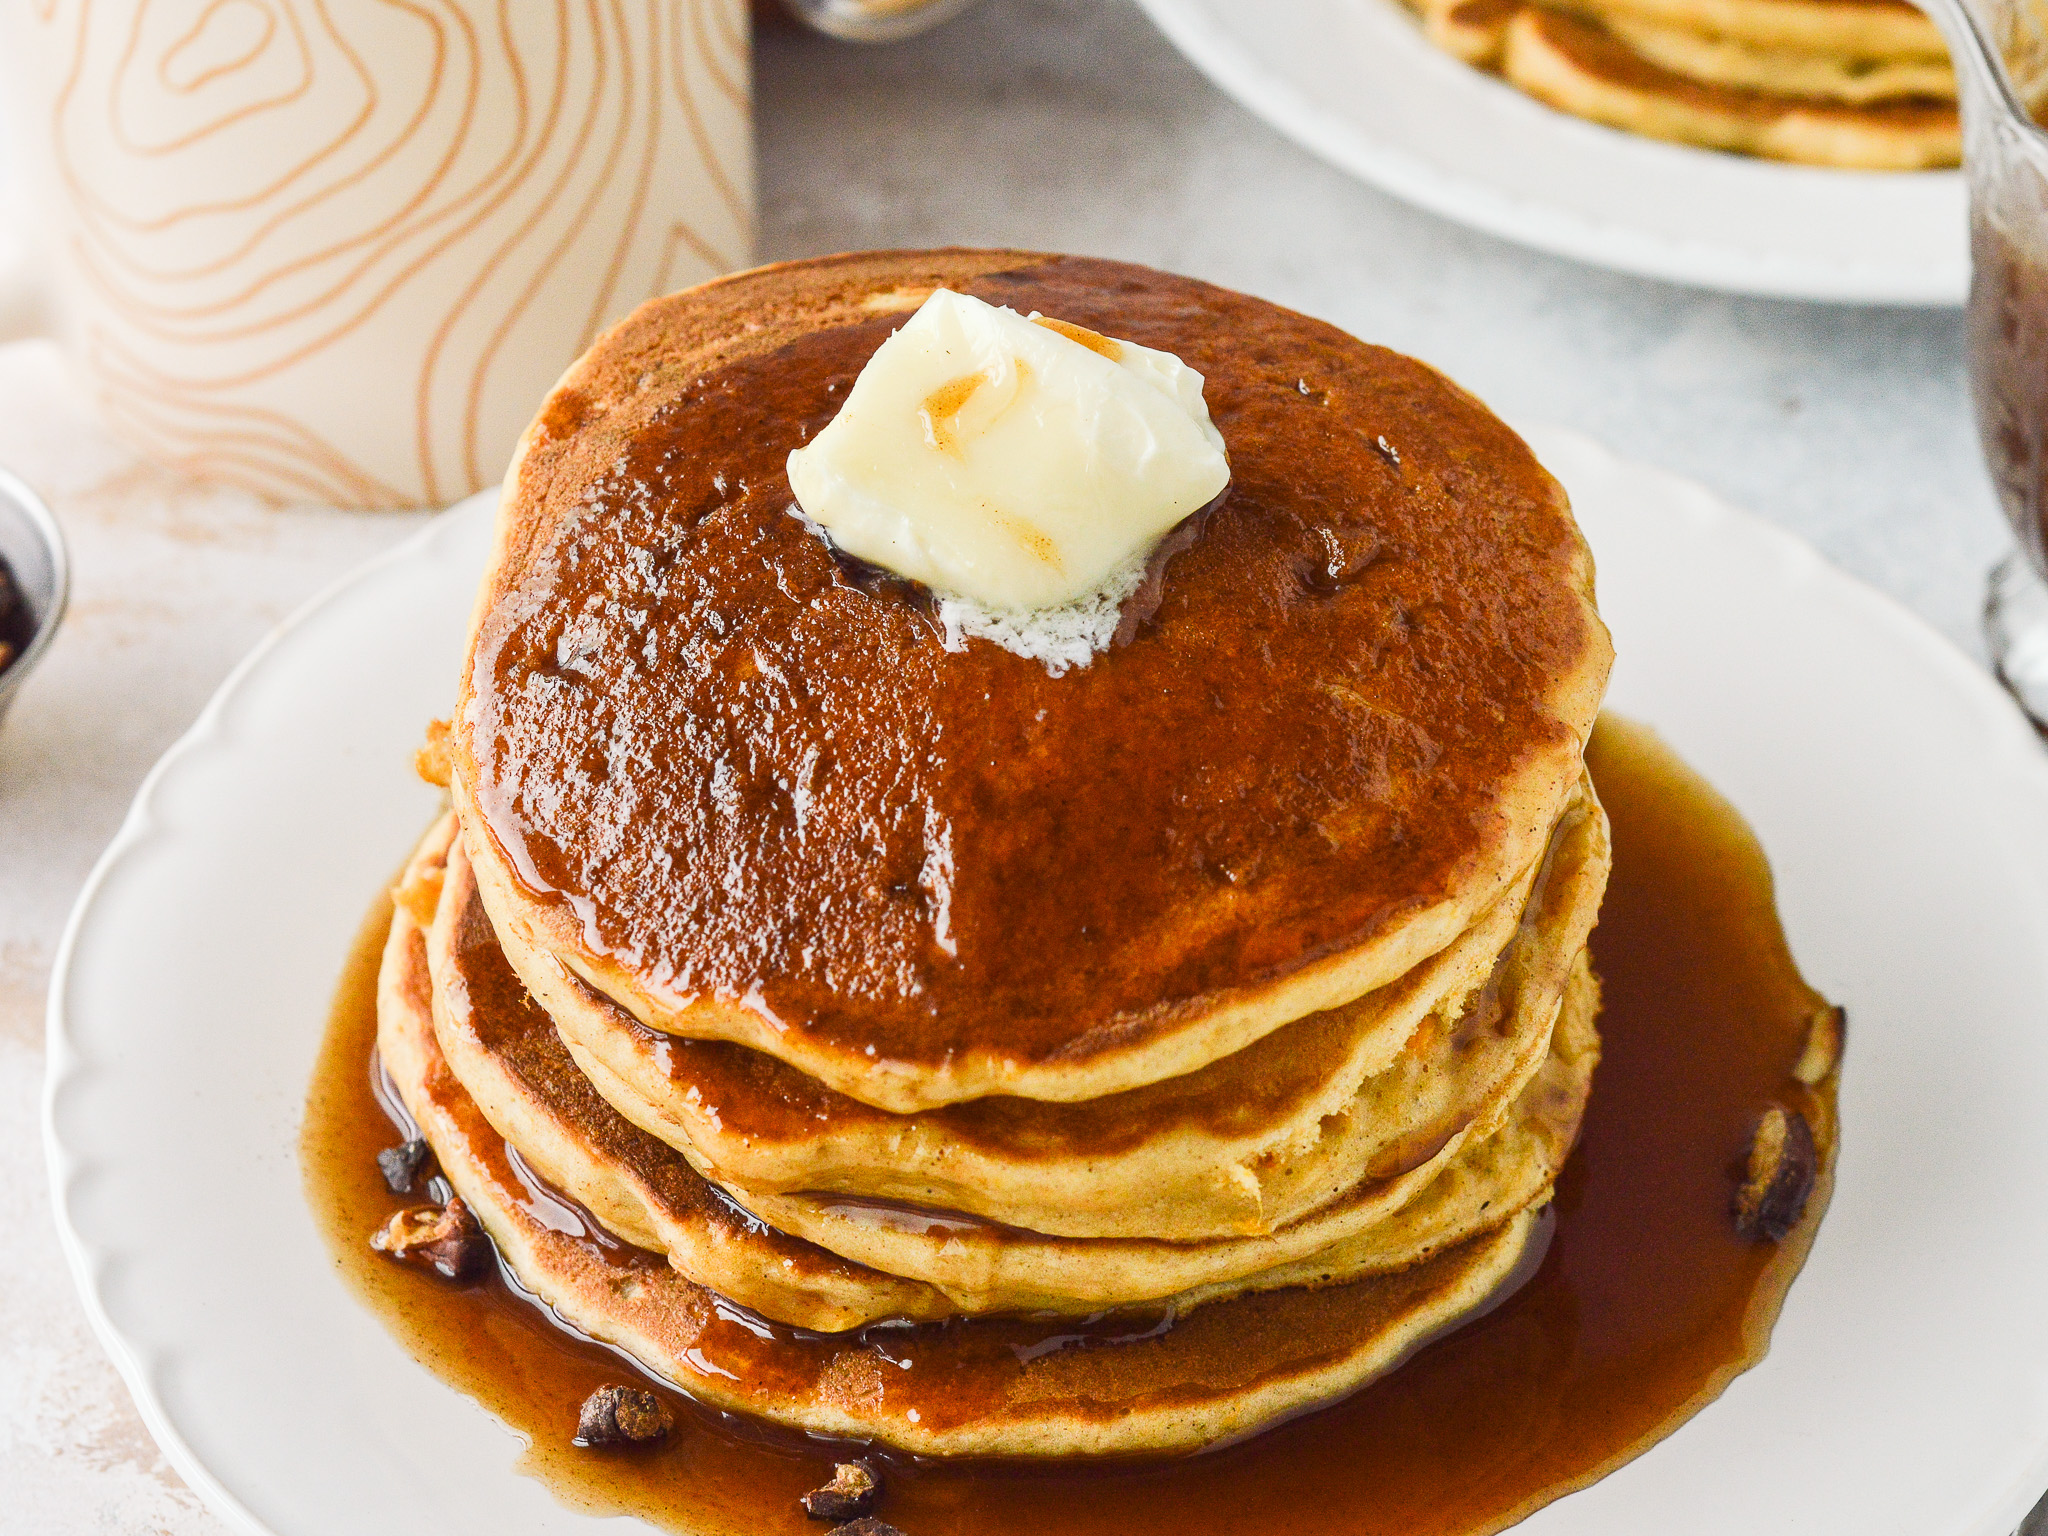 Sweet Potato Pancakes stacked on a plate with Cinnamon Syrup